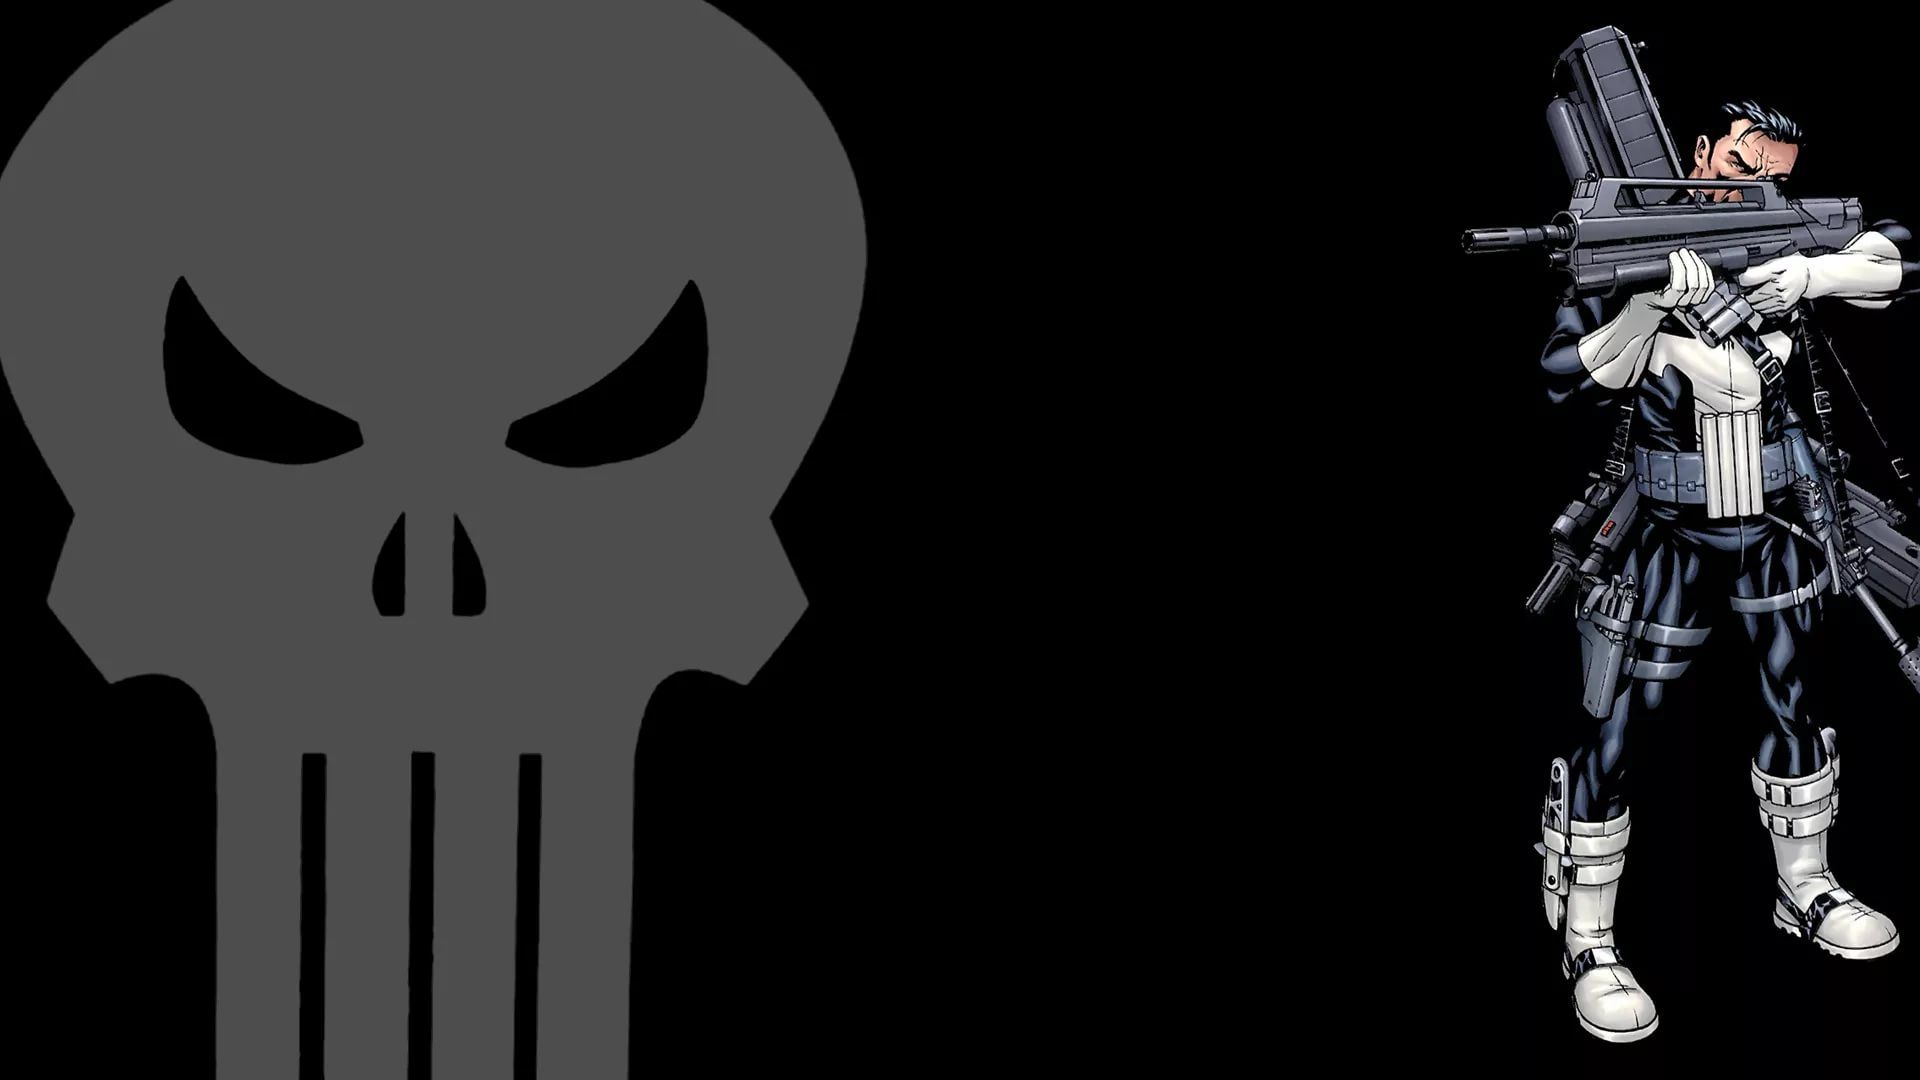 Punisher Skull wallpaper and themes